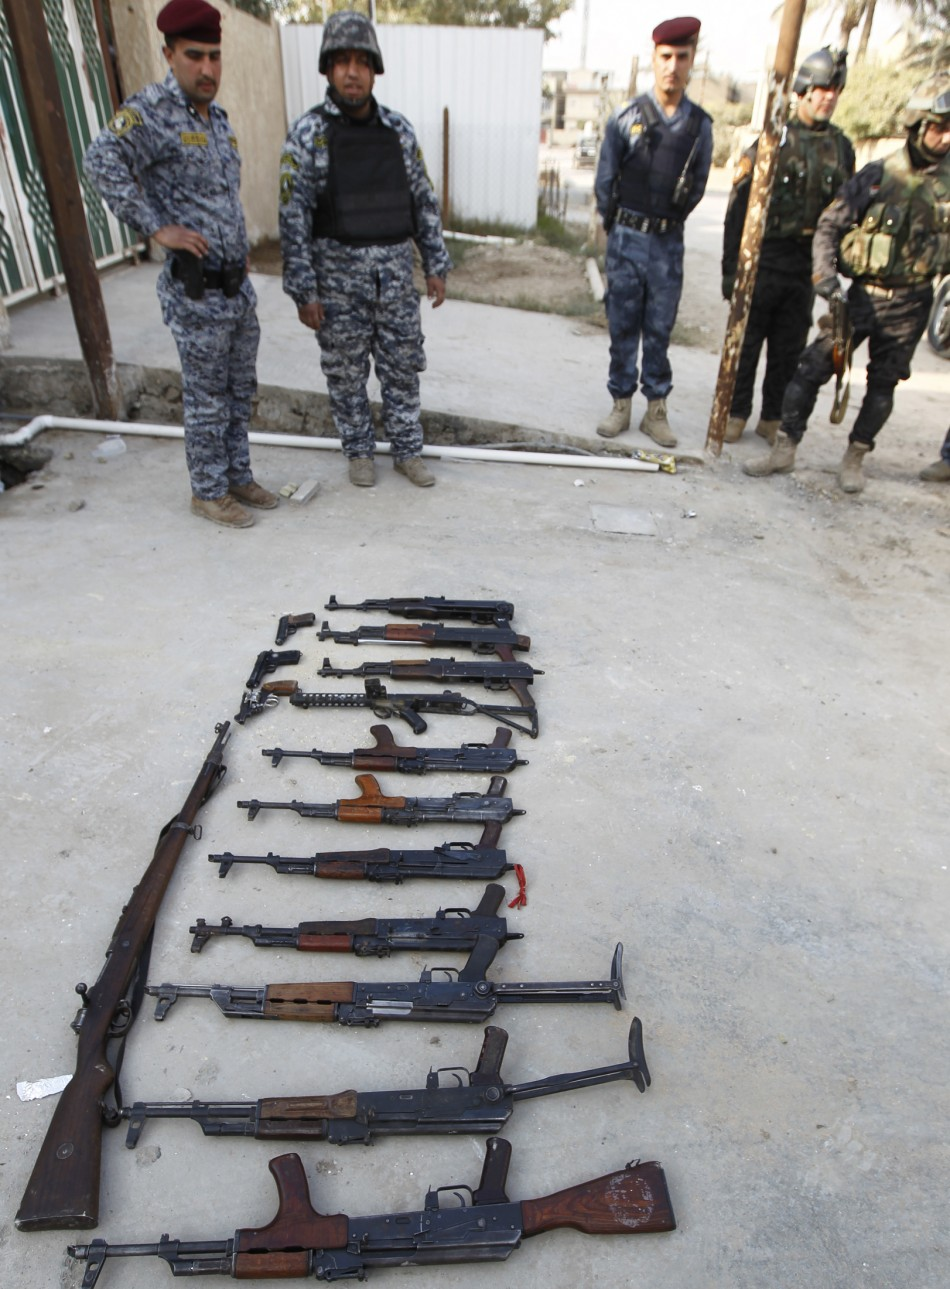 Weapons confiscated by Iraqi policemen in Baghdad